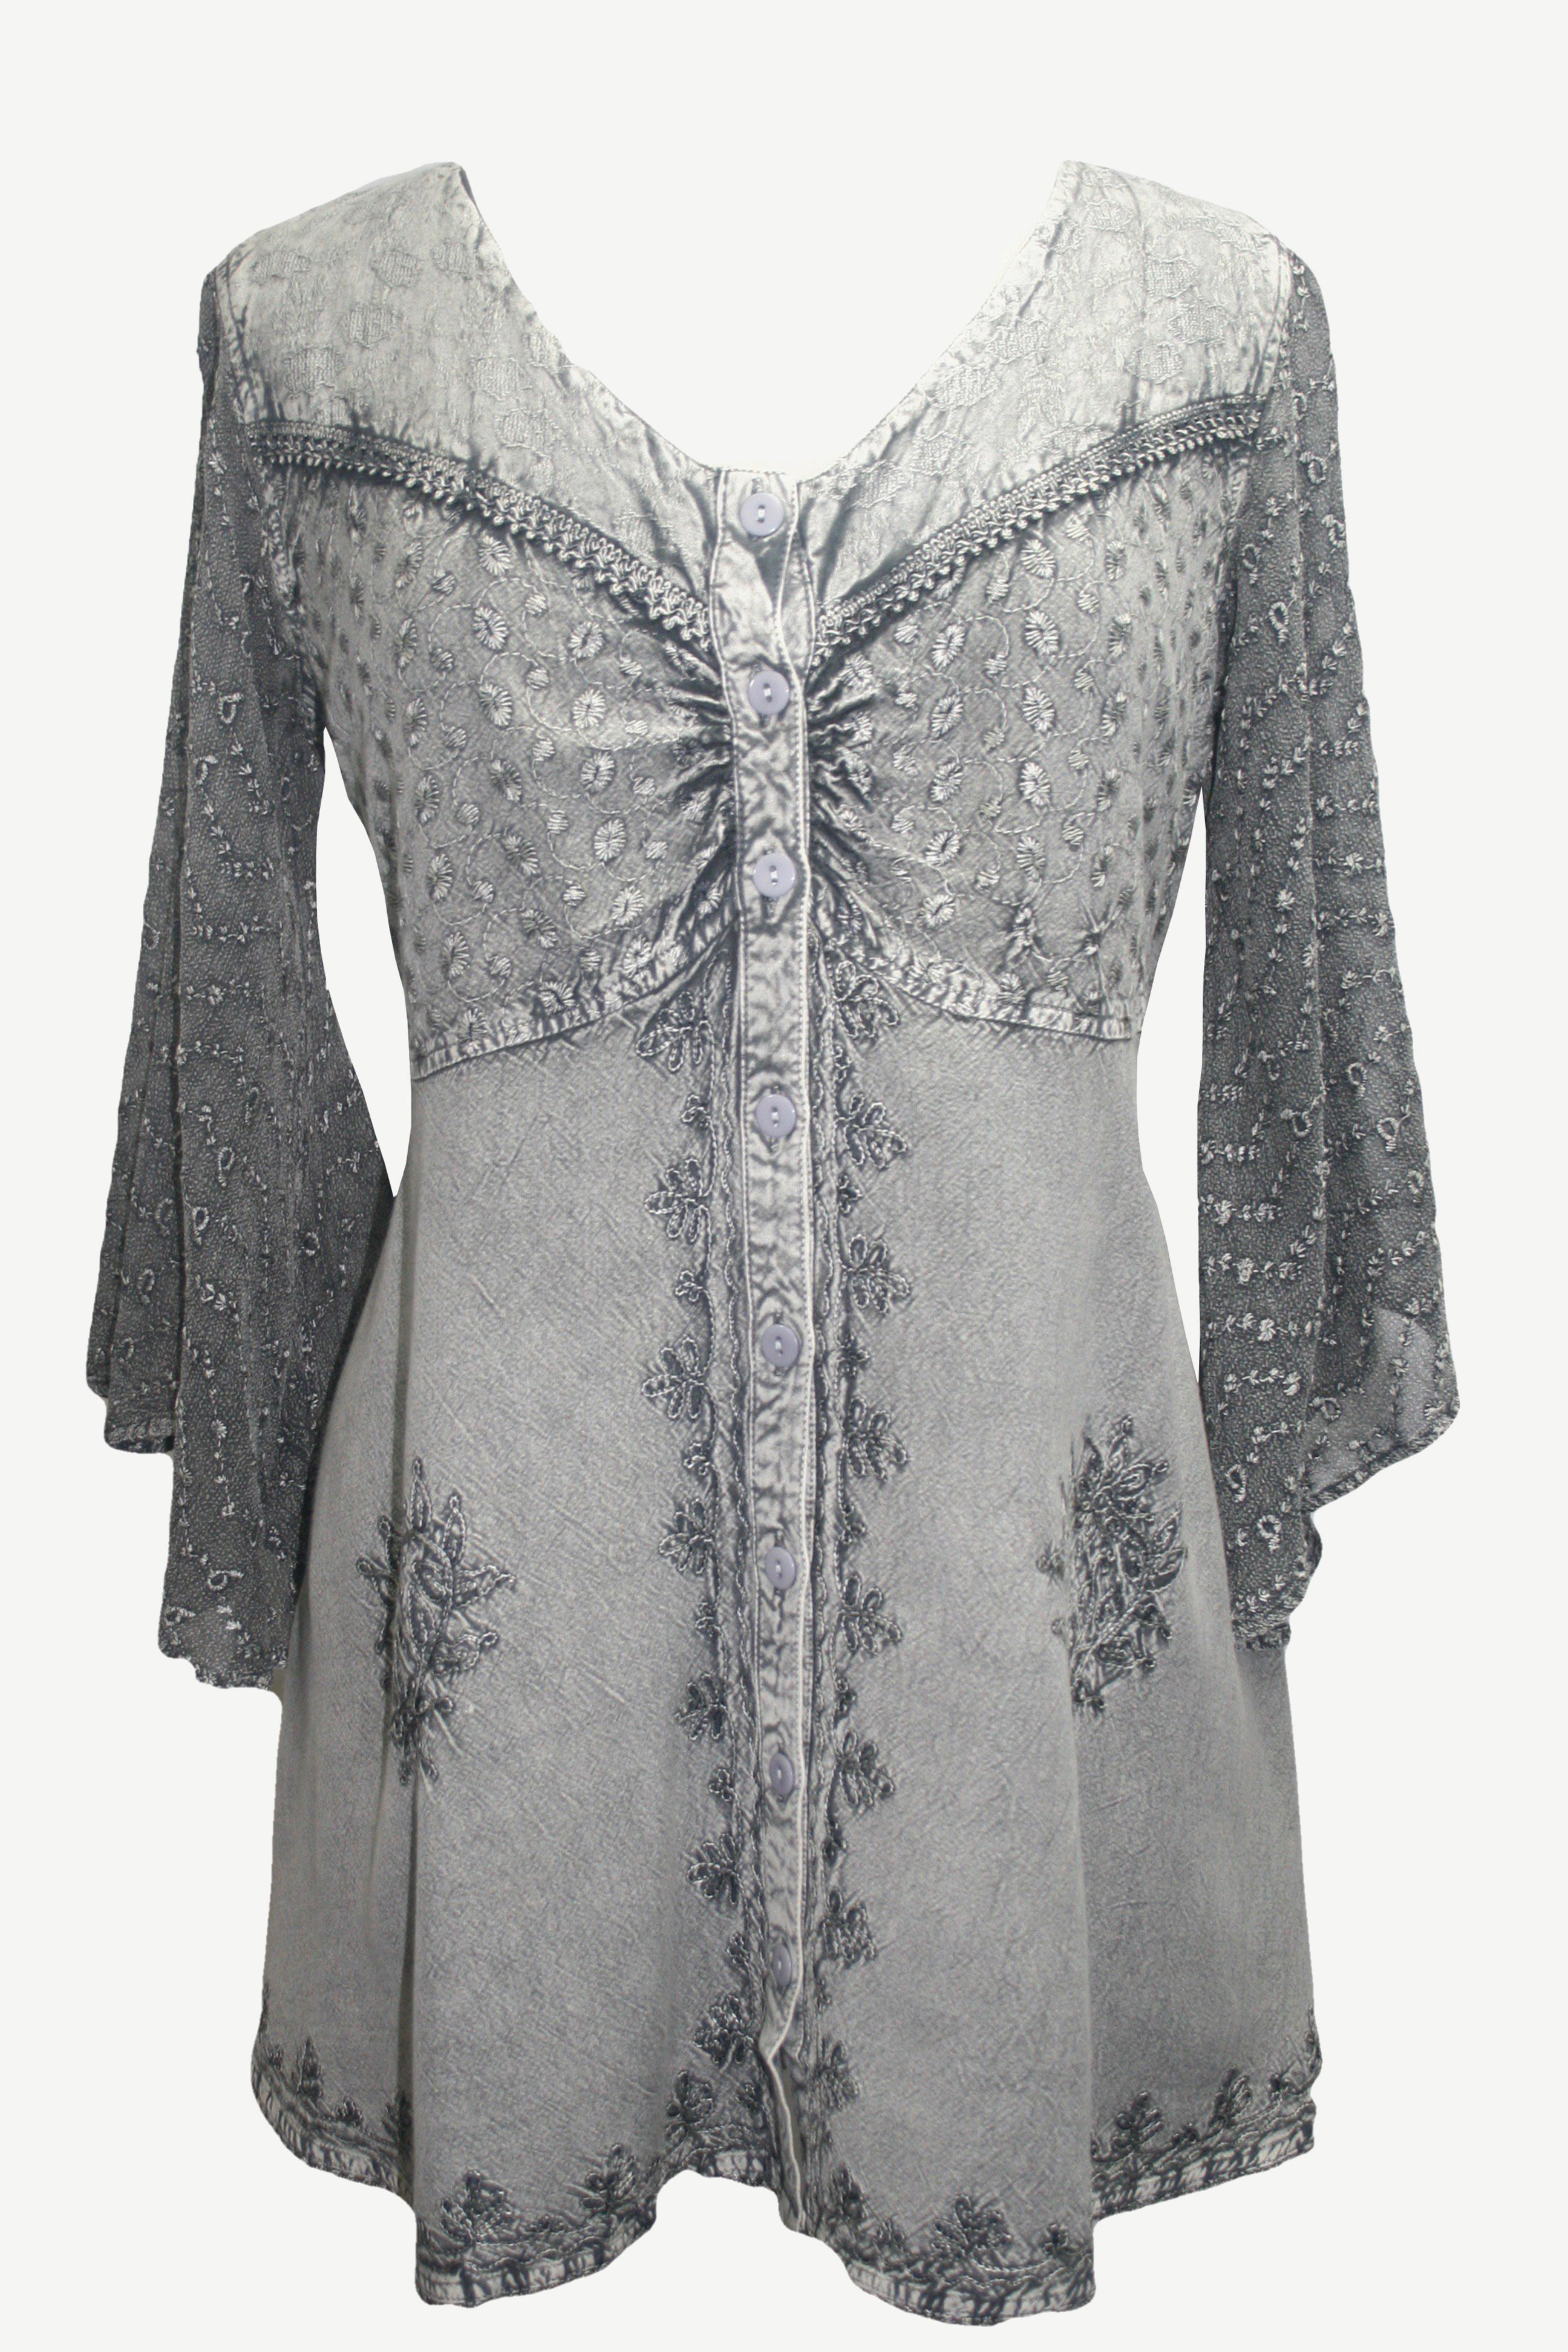 18607 B Medieval Gothic Embroidered Button Down Sheer Lace Sleeve Top Blouse - Agan Traders, Silver